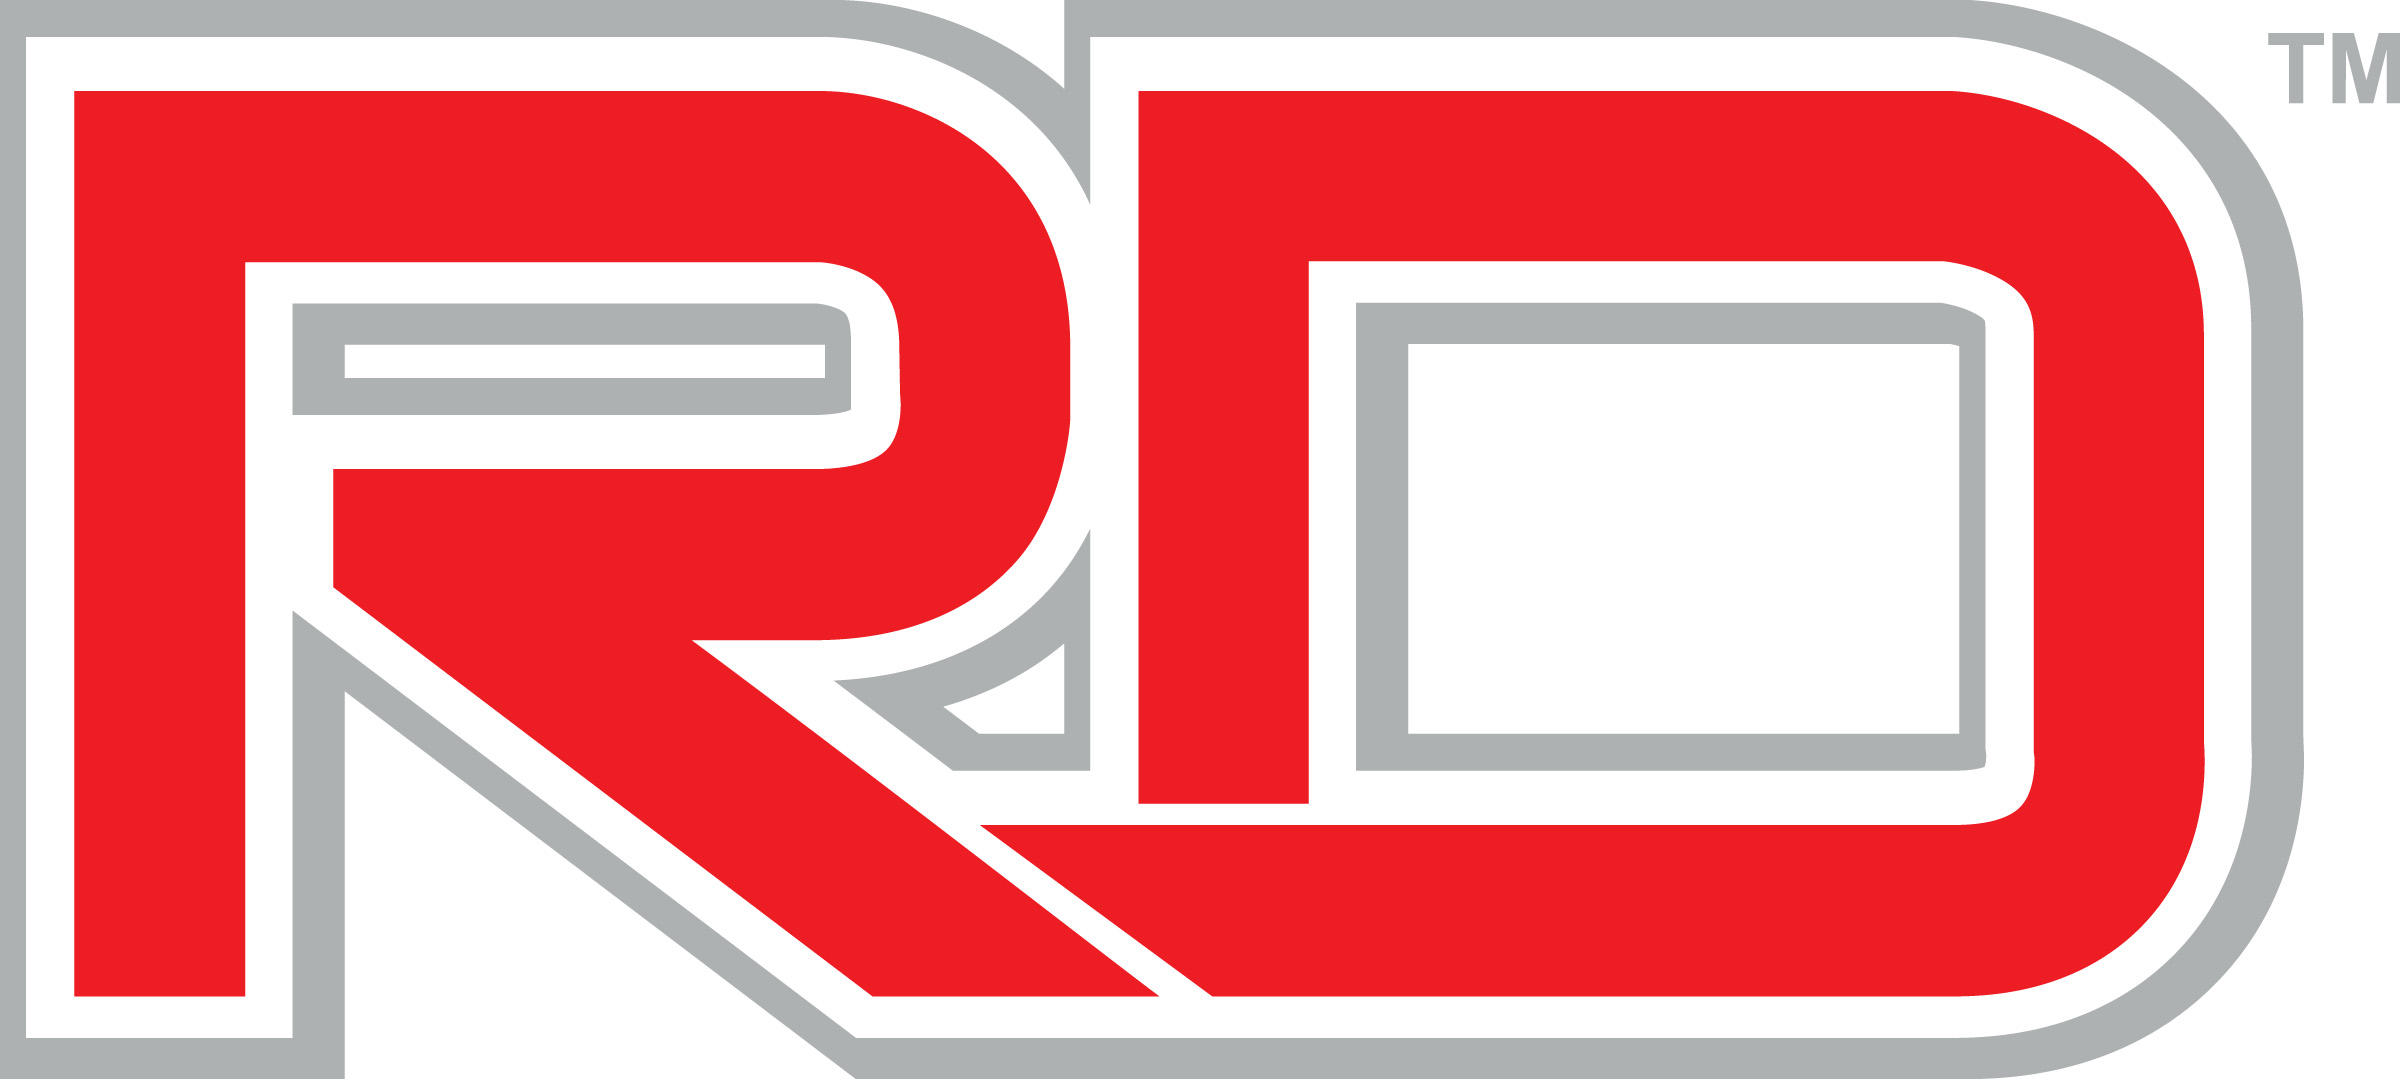 RD Logo Wallpaper